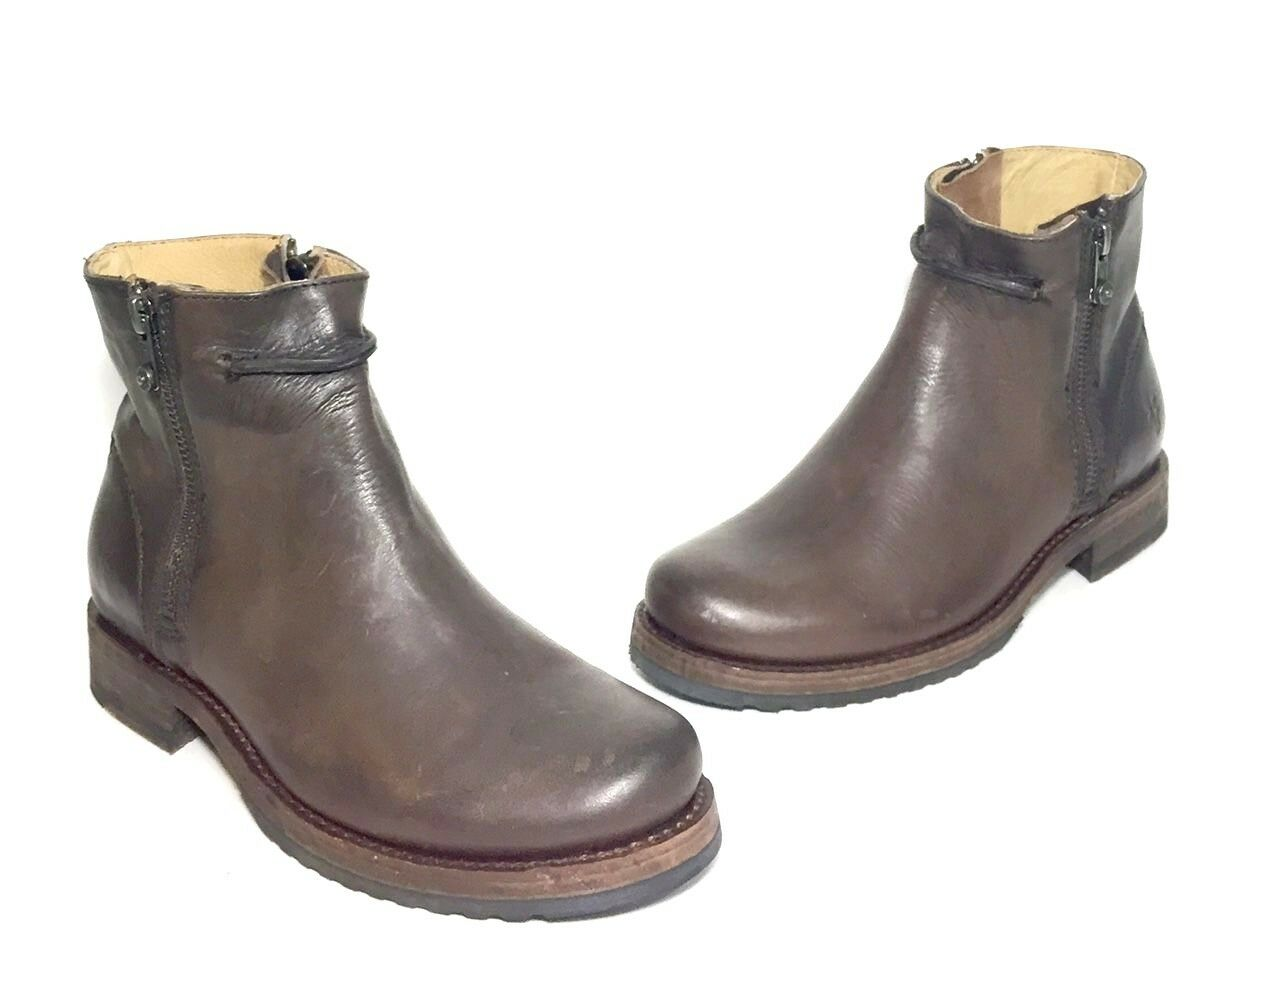 NEW $398 FRYE 3476 WOMEN VERONICA SEAM SHORT DARK BROWN LEATHER BOOT SIZE 6 B